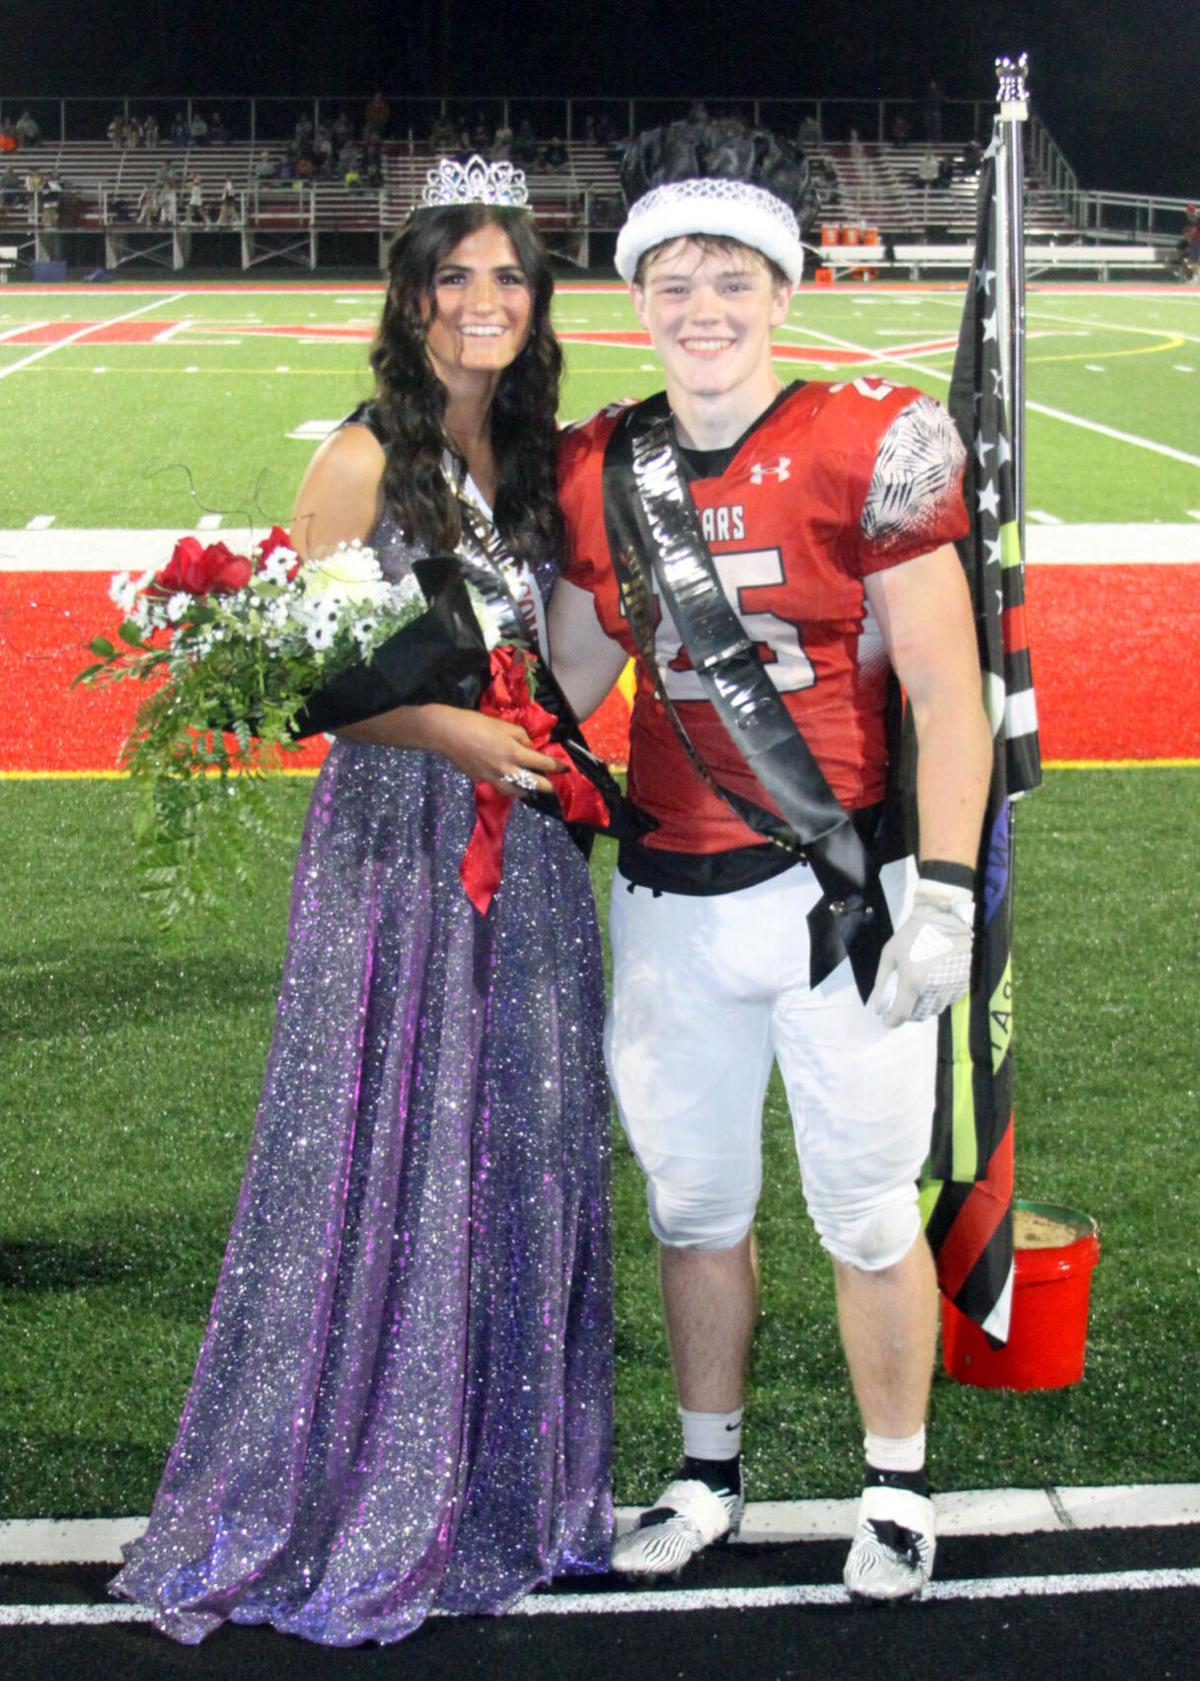 Kankakee Valley High School Homecoming King and Queen 2021